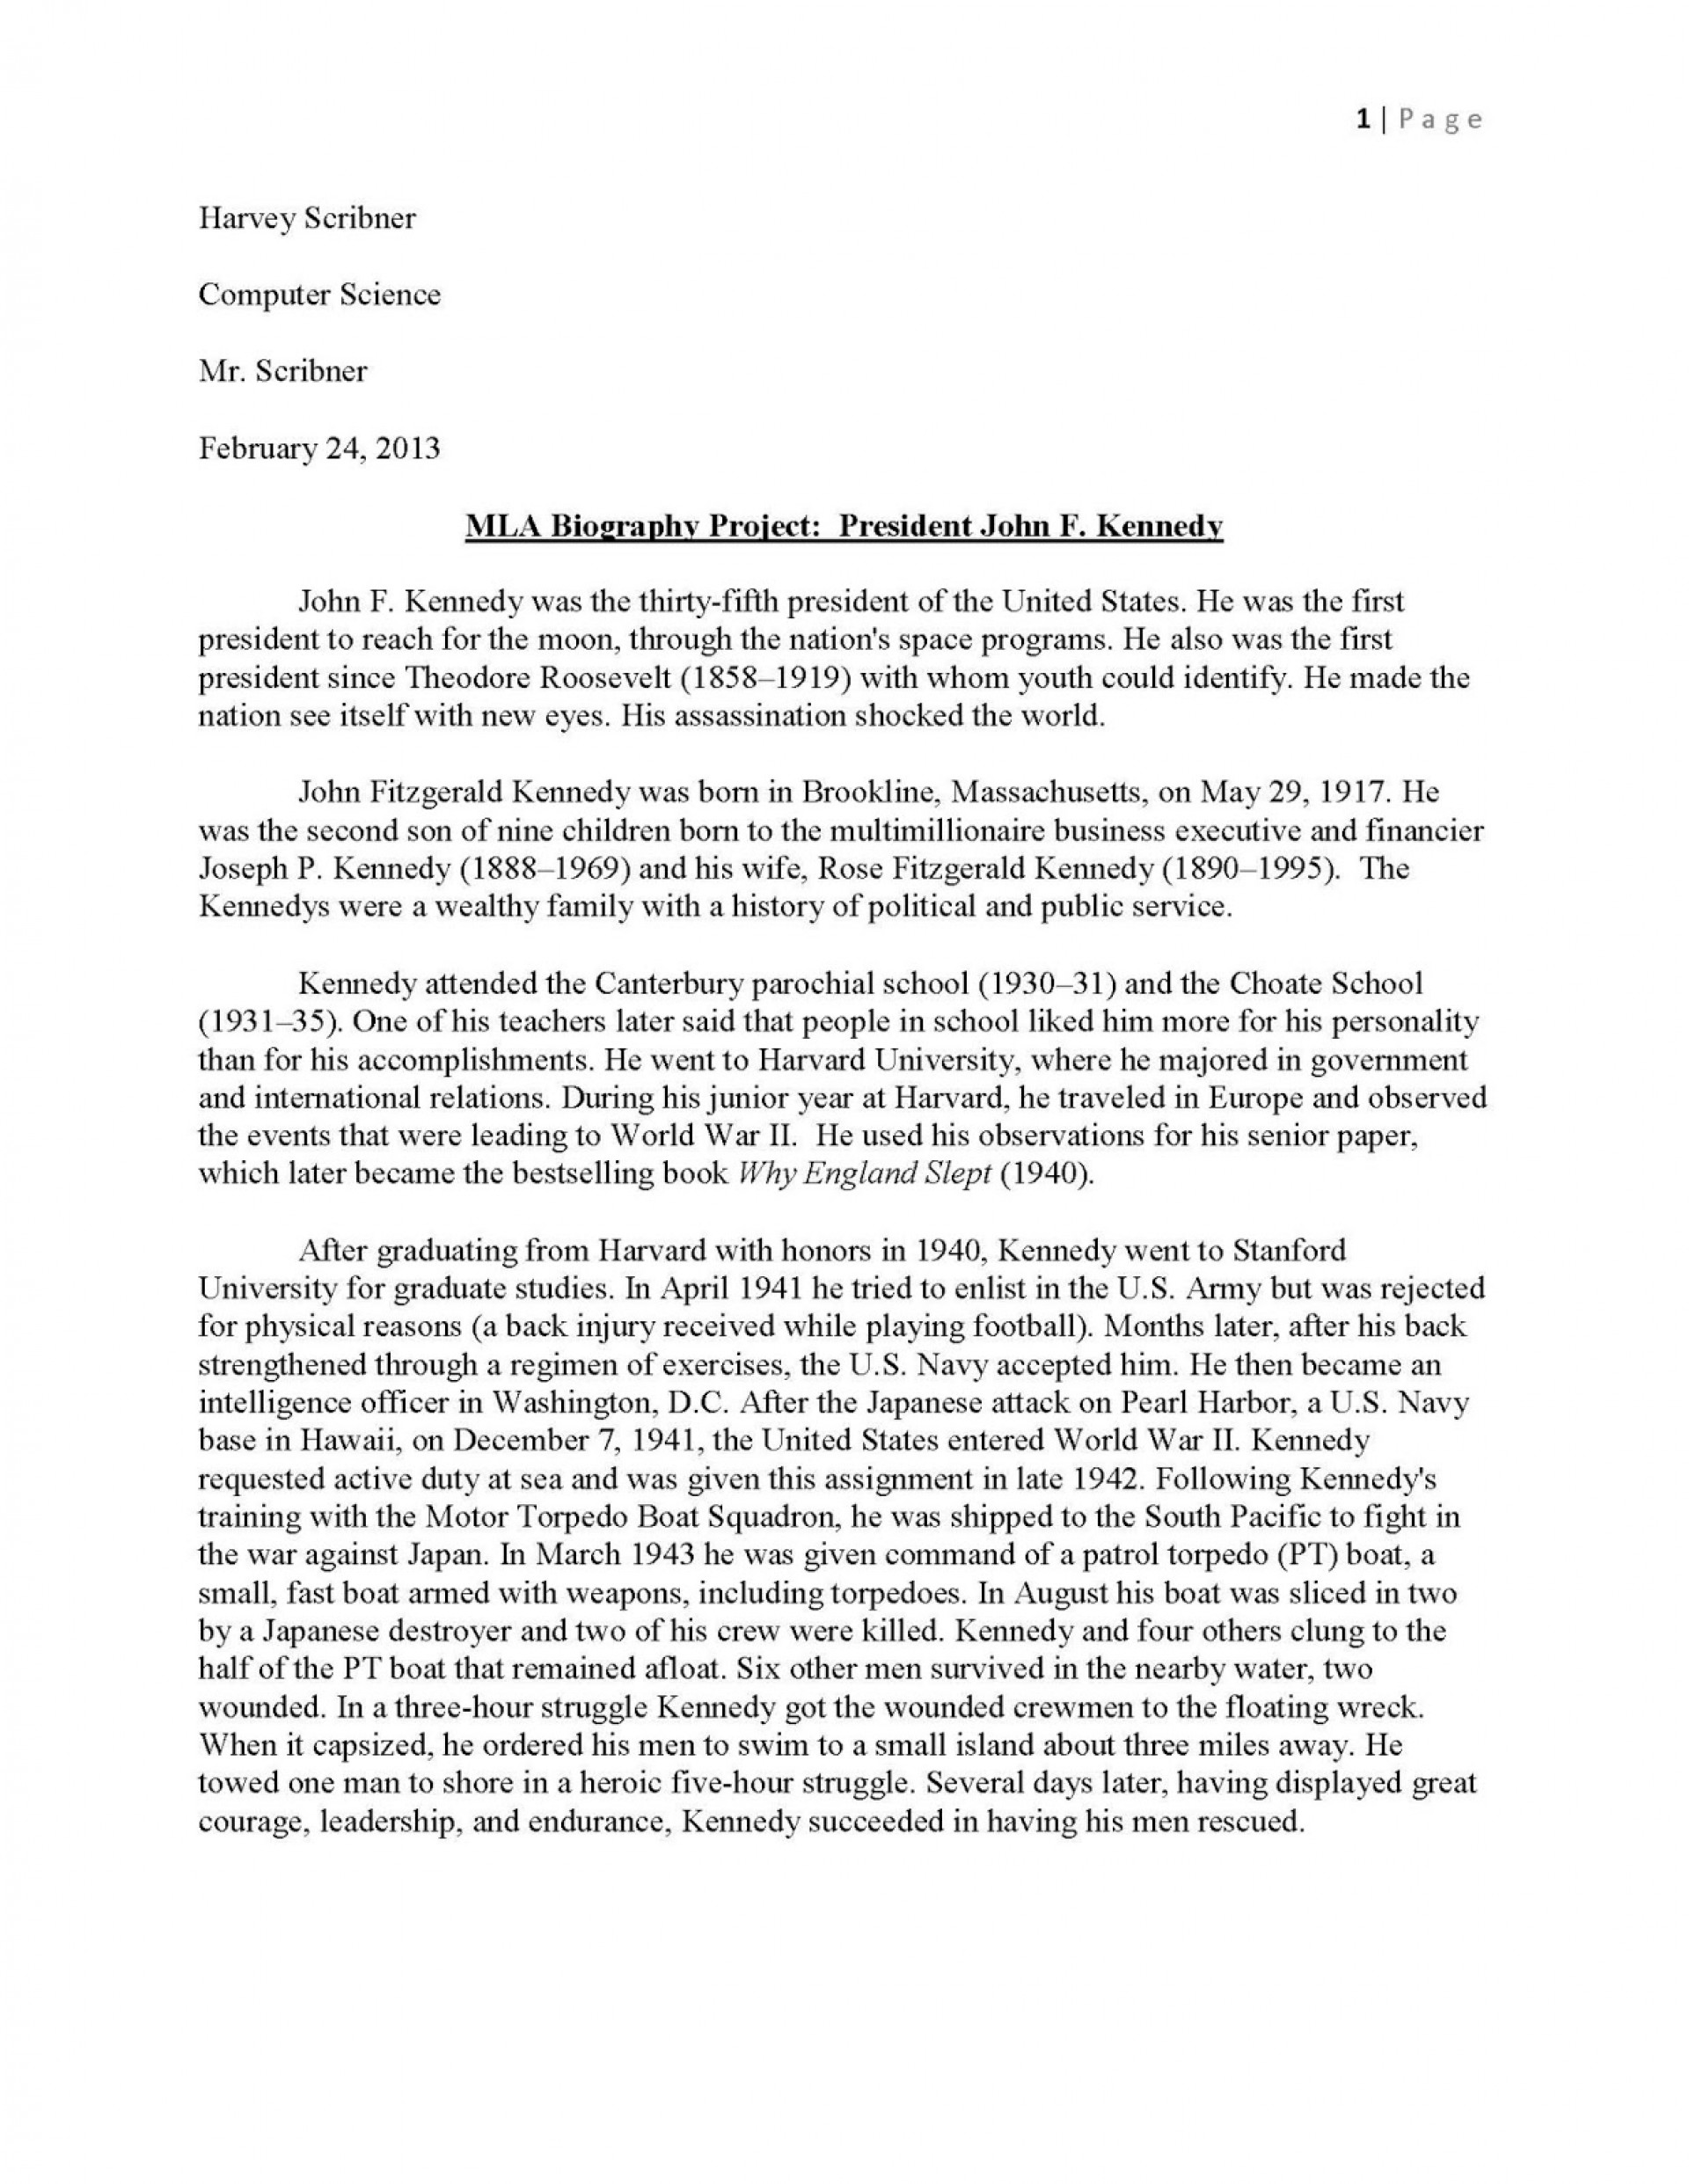 013 Essay Example Jfk20mla20short20form20biography20report20example Page 1 Shocking Short Answer Rubric Apush About Slavery In America Questions Internal Medicine 1920